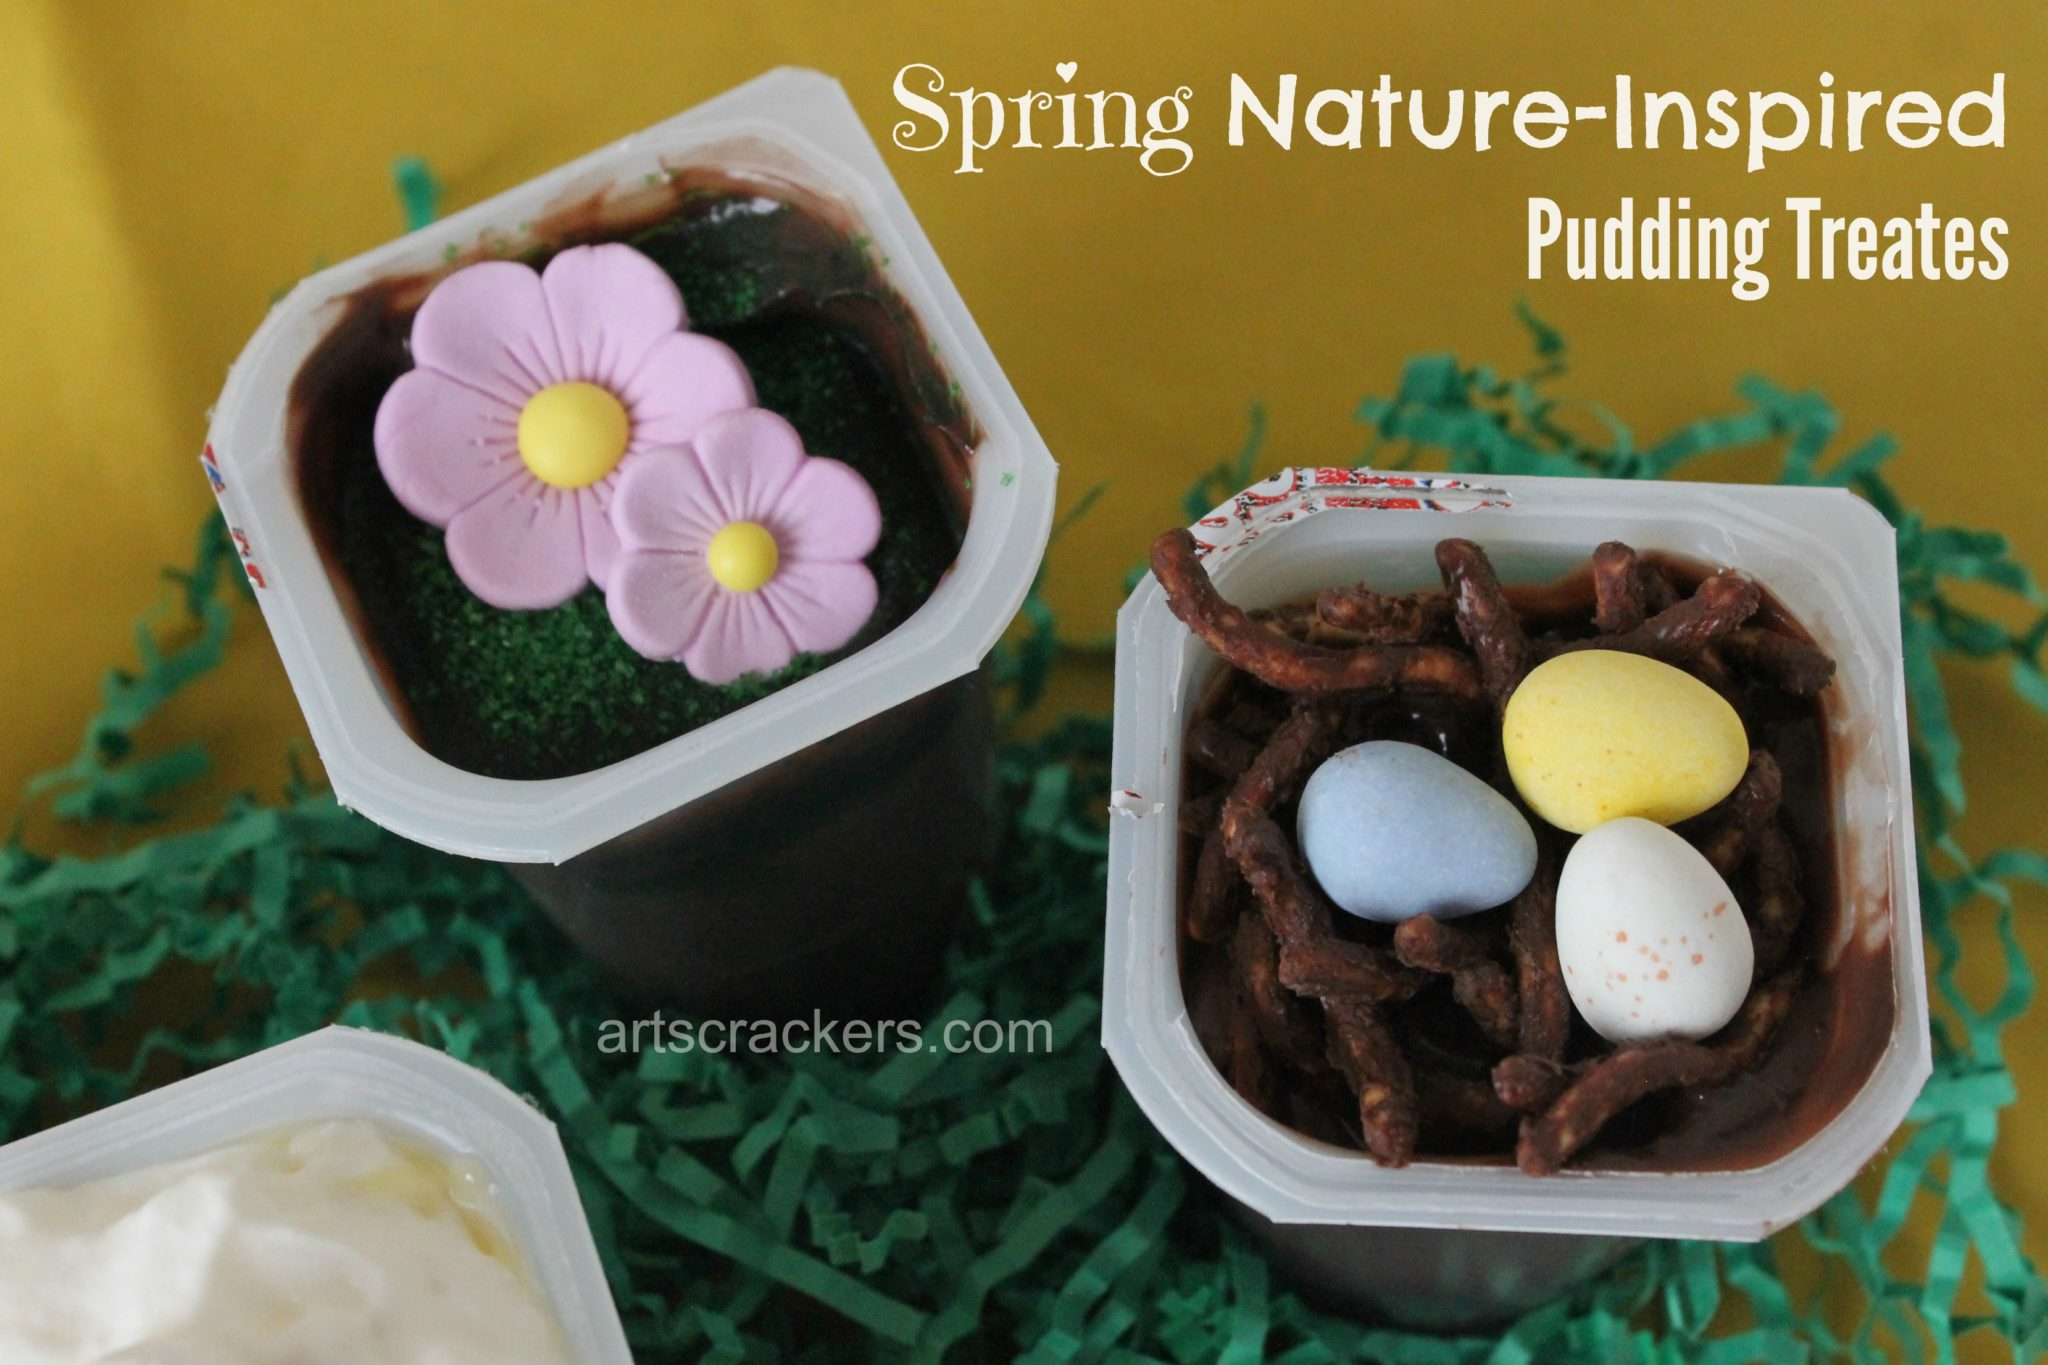 Snack Pack Pudding Mix Ins Flowers Patch and Bird Nest. Click the picture to view instructions.